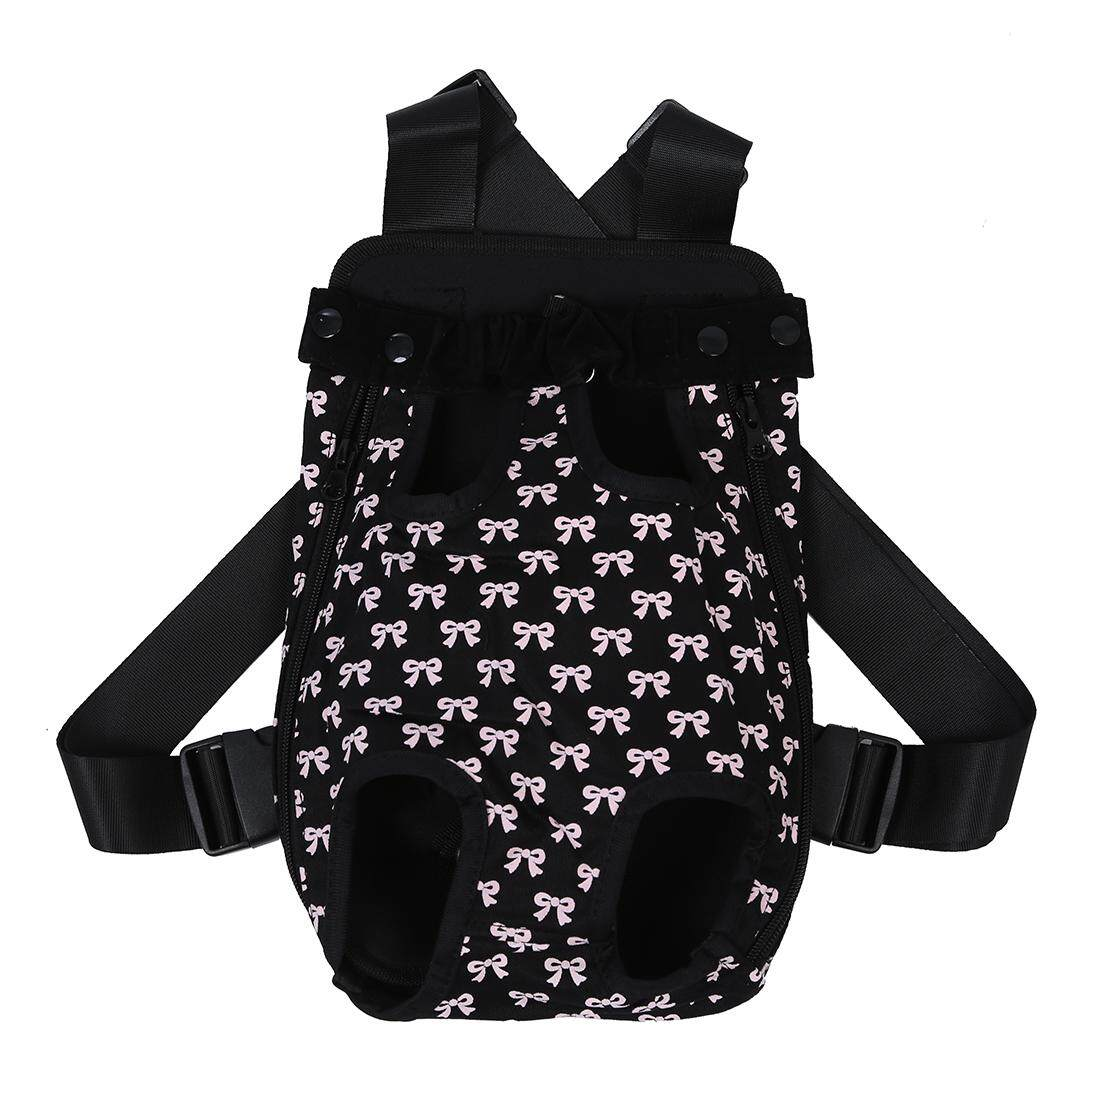 Exchange Carrier Pouch Black Washable Dog Cat Home M - Intl By Superbuy666.